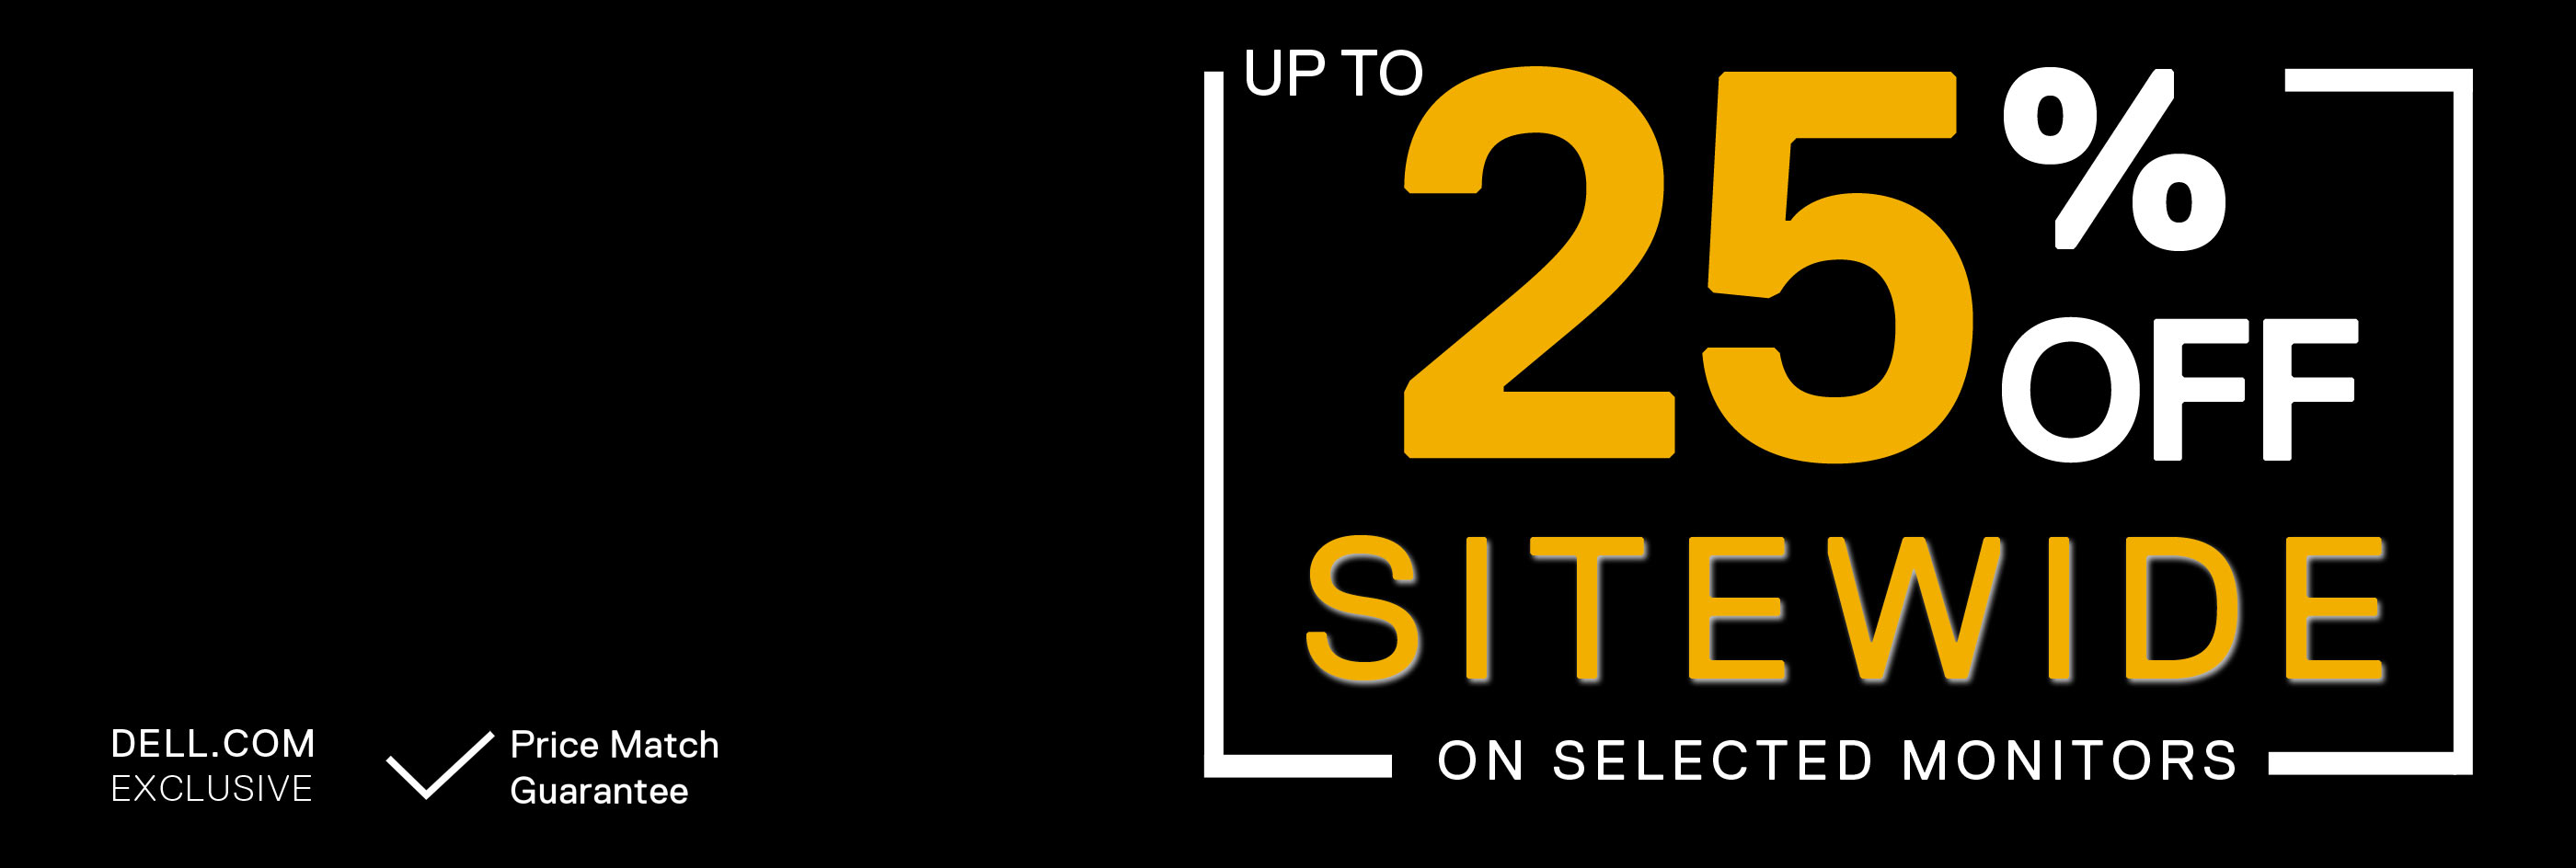 Sitewide Sale on selected monitors.